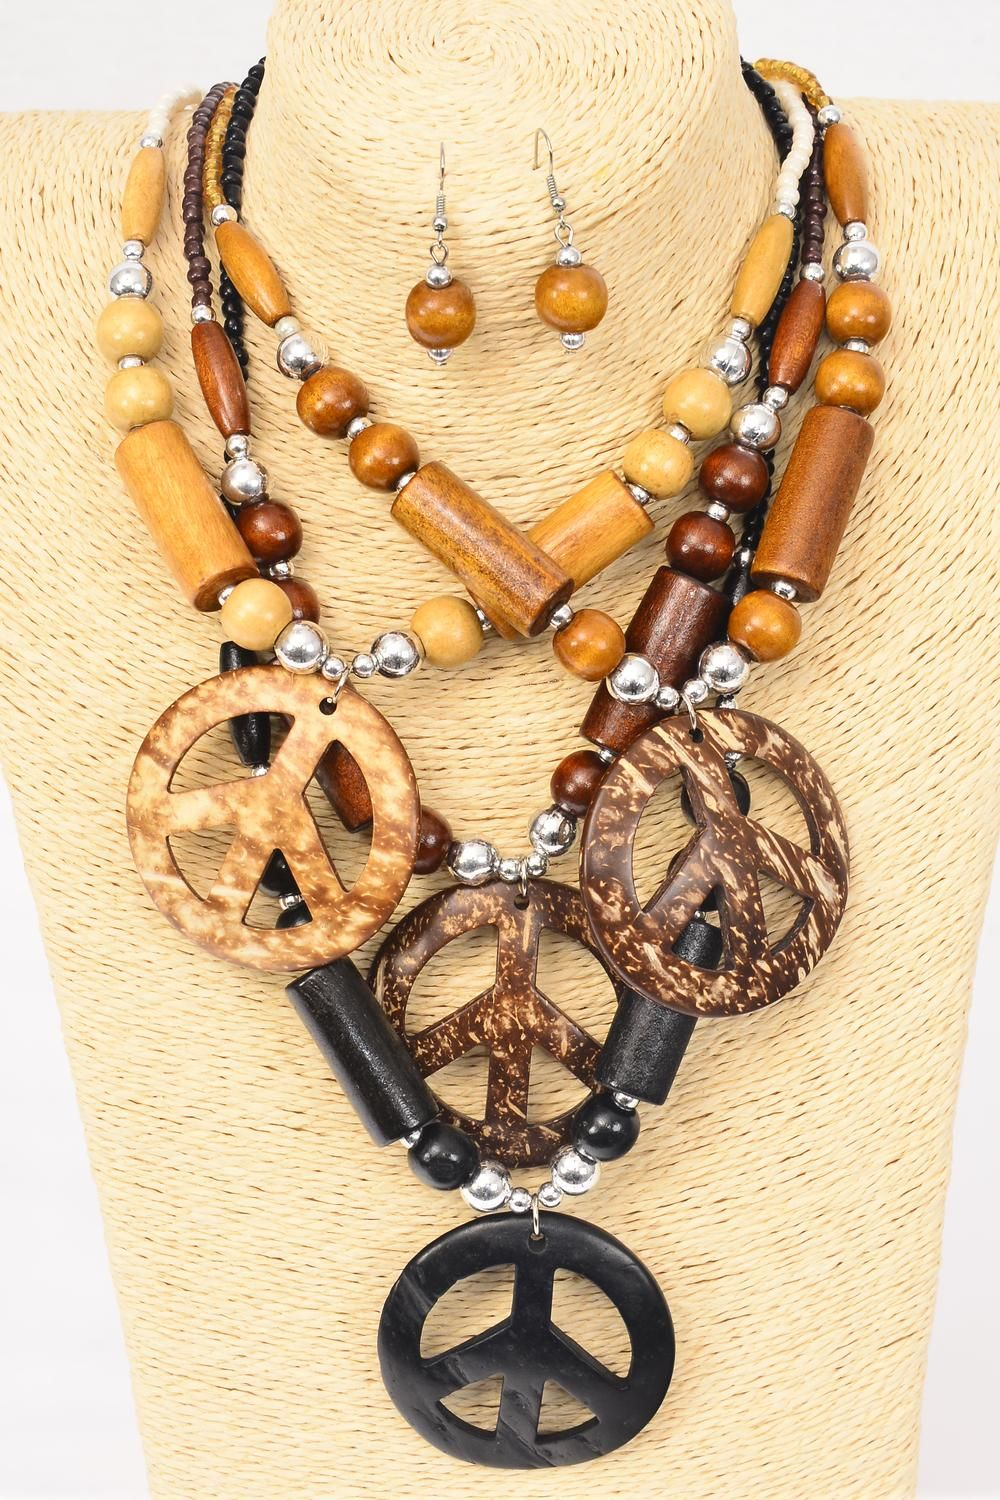 "Necklace Sets Wooden Bead Coconut Shells Peace Sign/DZ Pendant Size-2.5"", 22"" Long, 3 of each Color Asst, Hang Tag & OPP Bag & UPC Code"